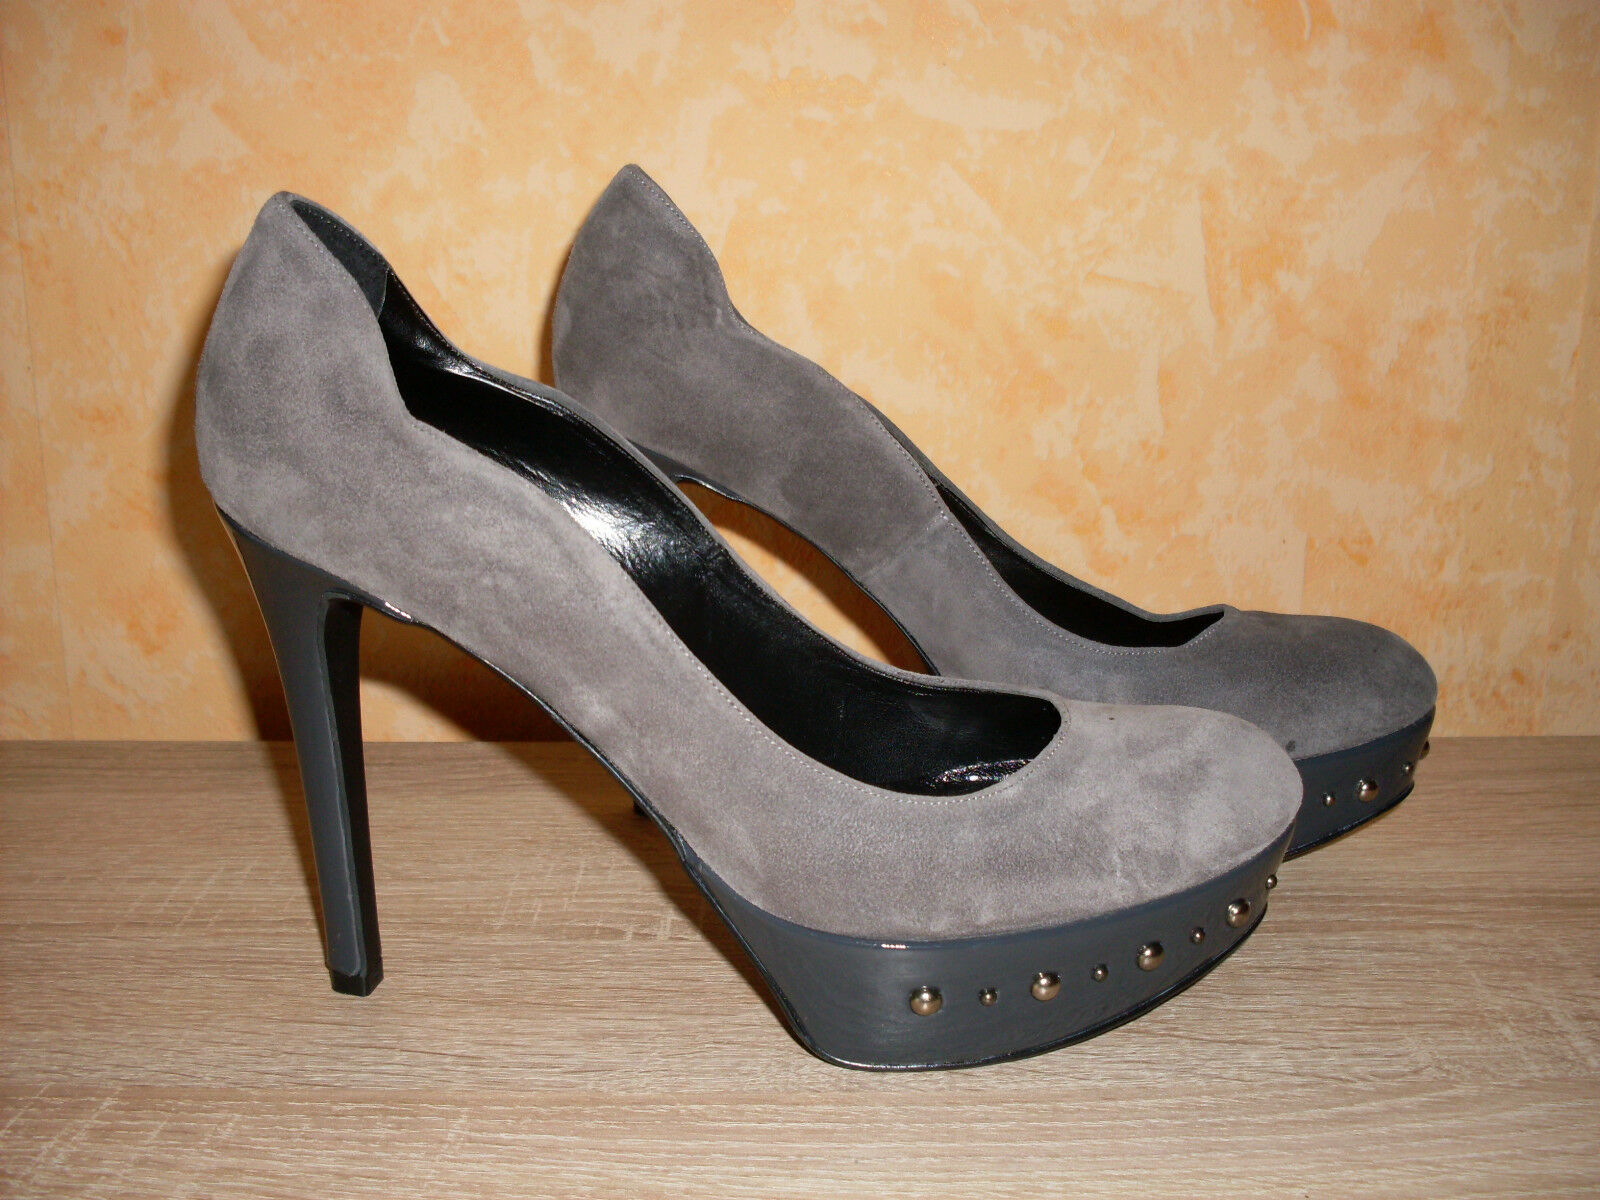 Sexy 12,5cm Platform Pumps NEW Size 40 in Grey with Studs & Suede Super Hot